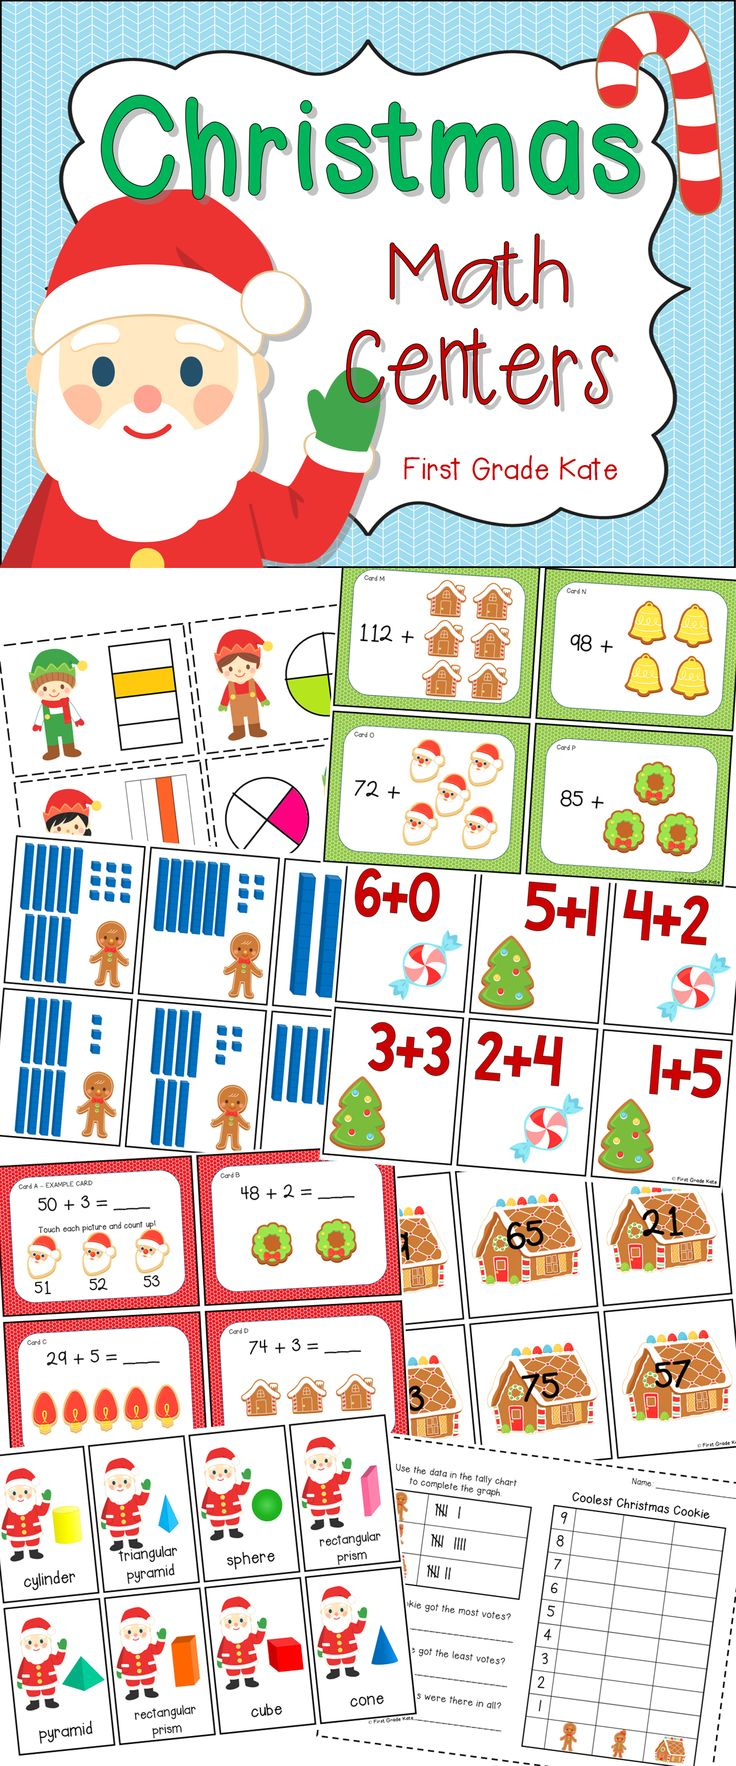 Need some math activities to keep your first grade kiddos engaged this last week before break?  Check out these math centers!  $